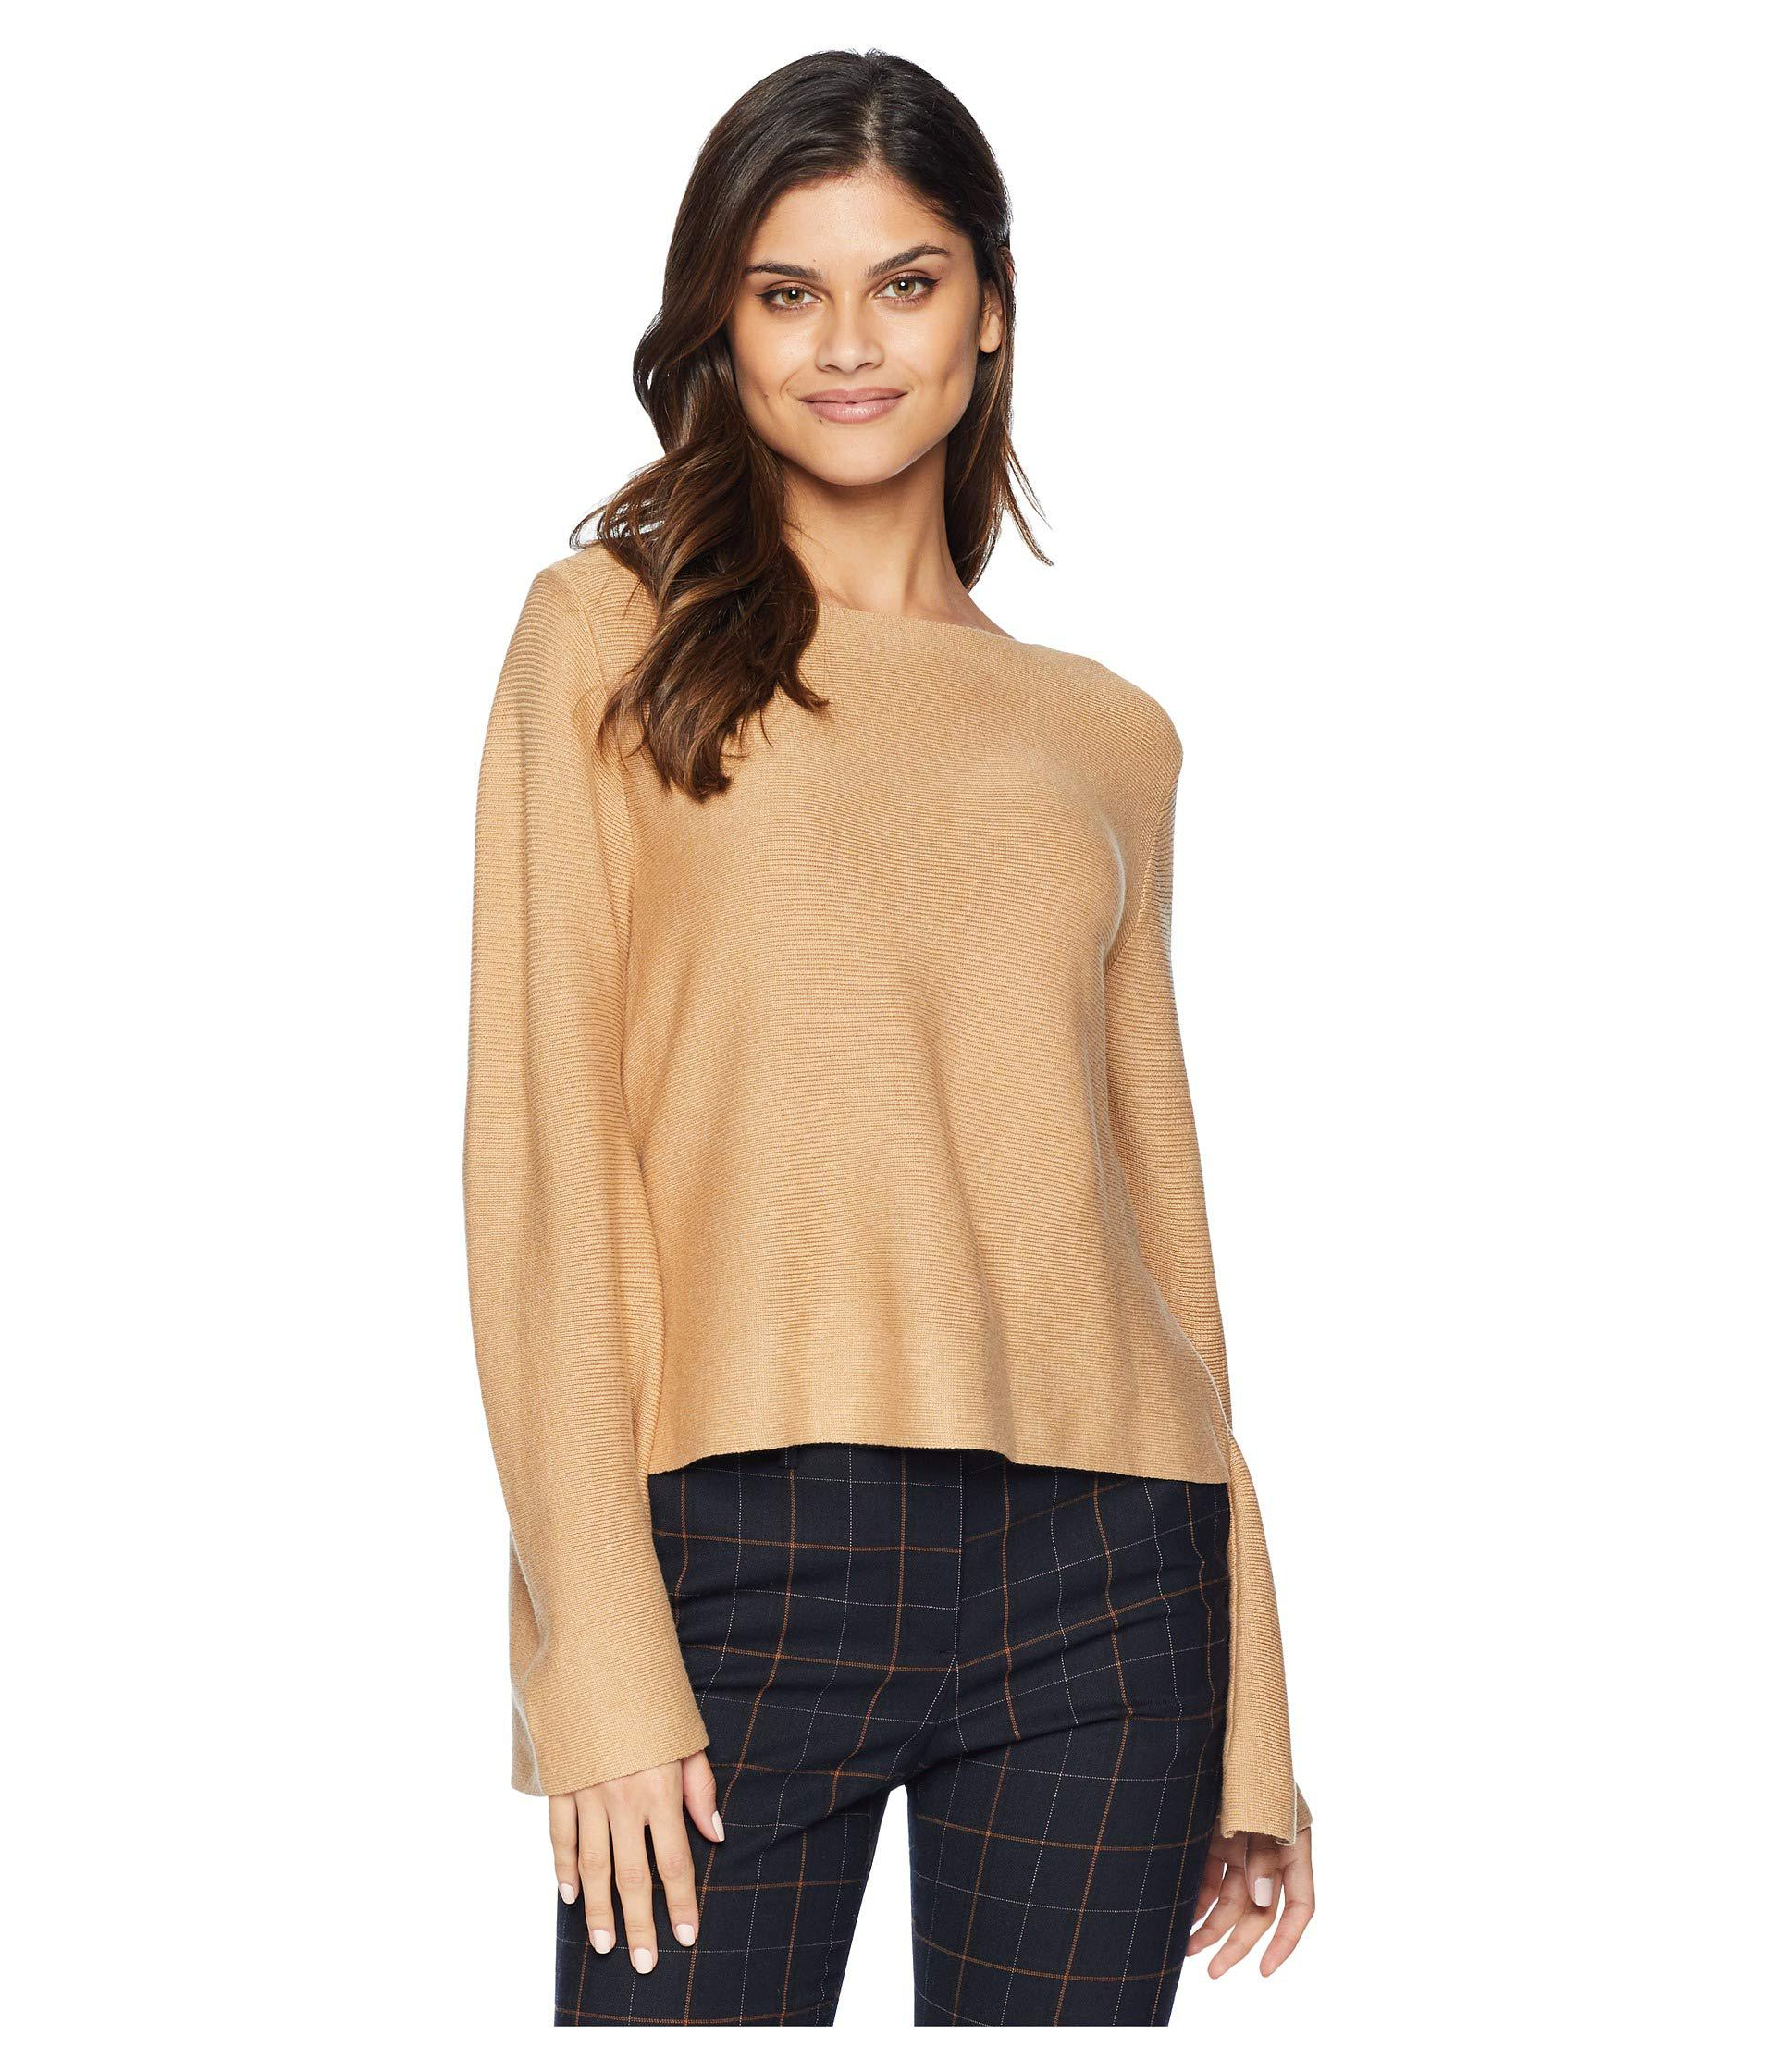 fef146340f2c5 Lyst - Bishop + Young Savvy Sweater (blue) Women s Sweater in Natural